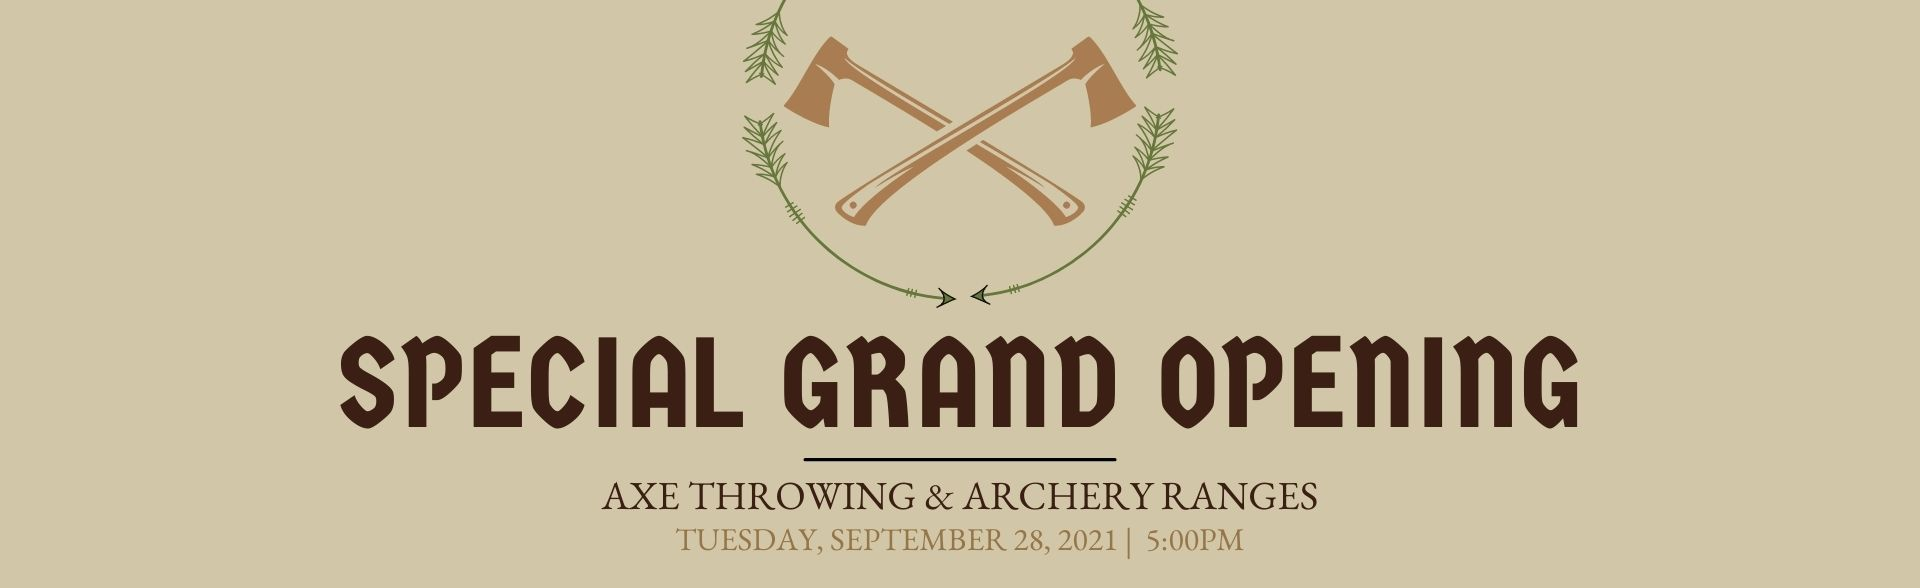 Archery & Axe Throwing Grand Opening FT Banner